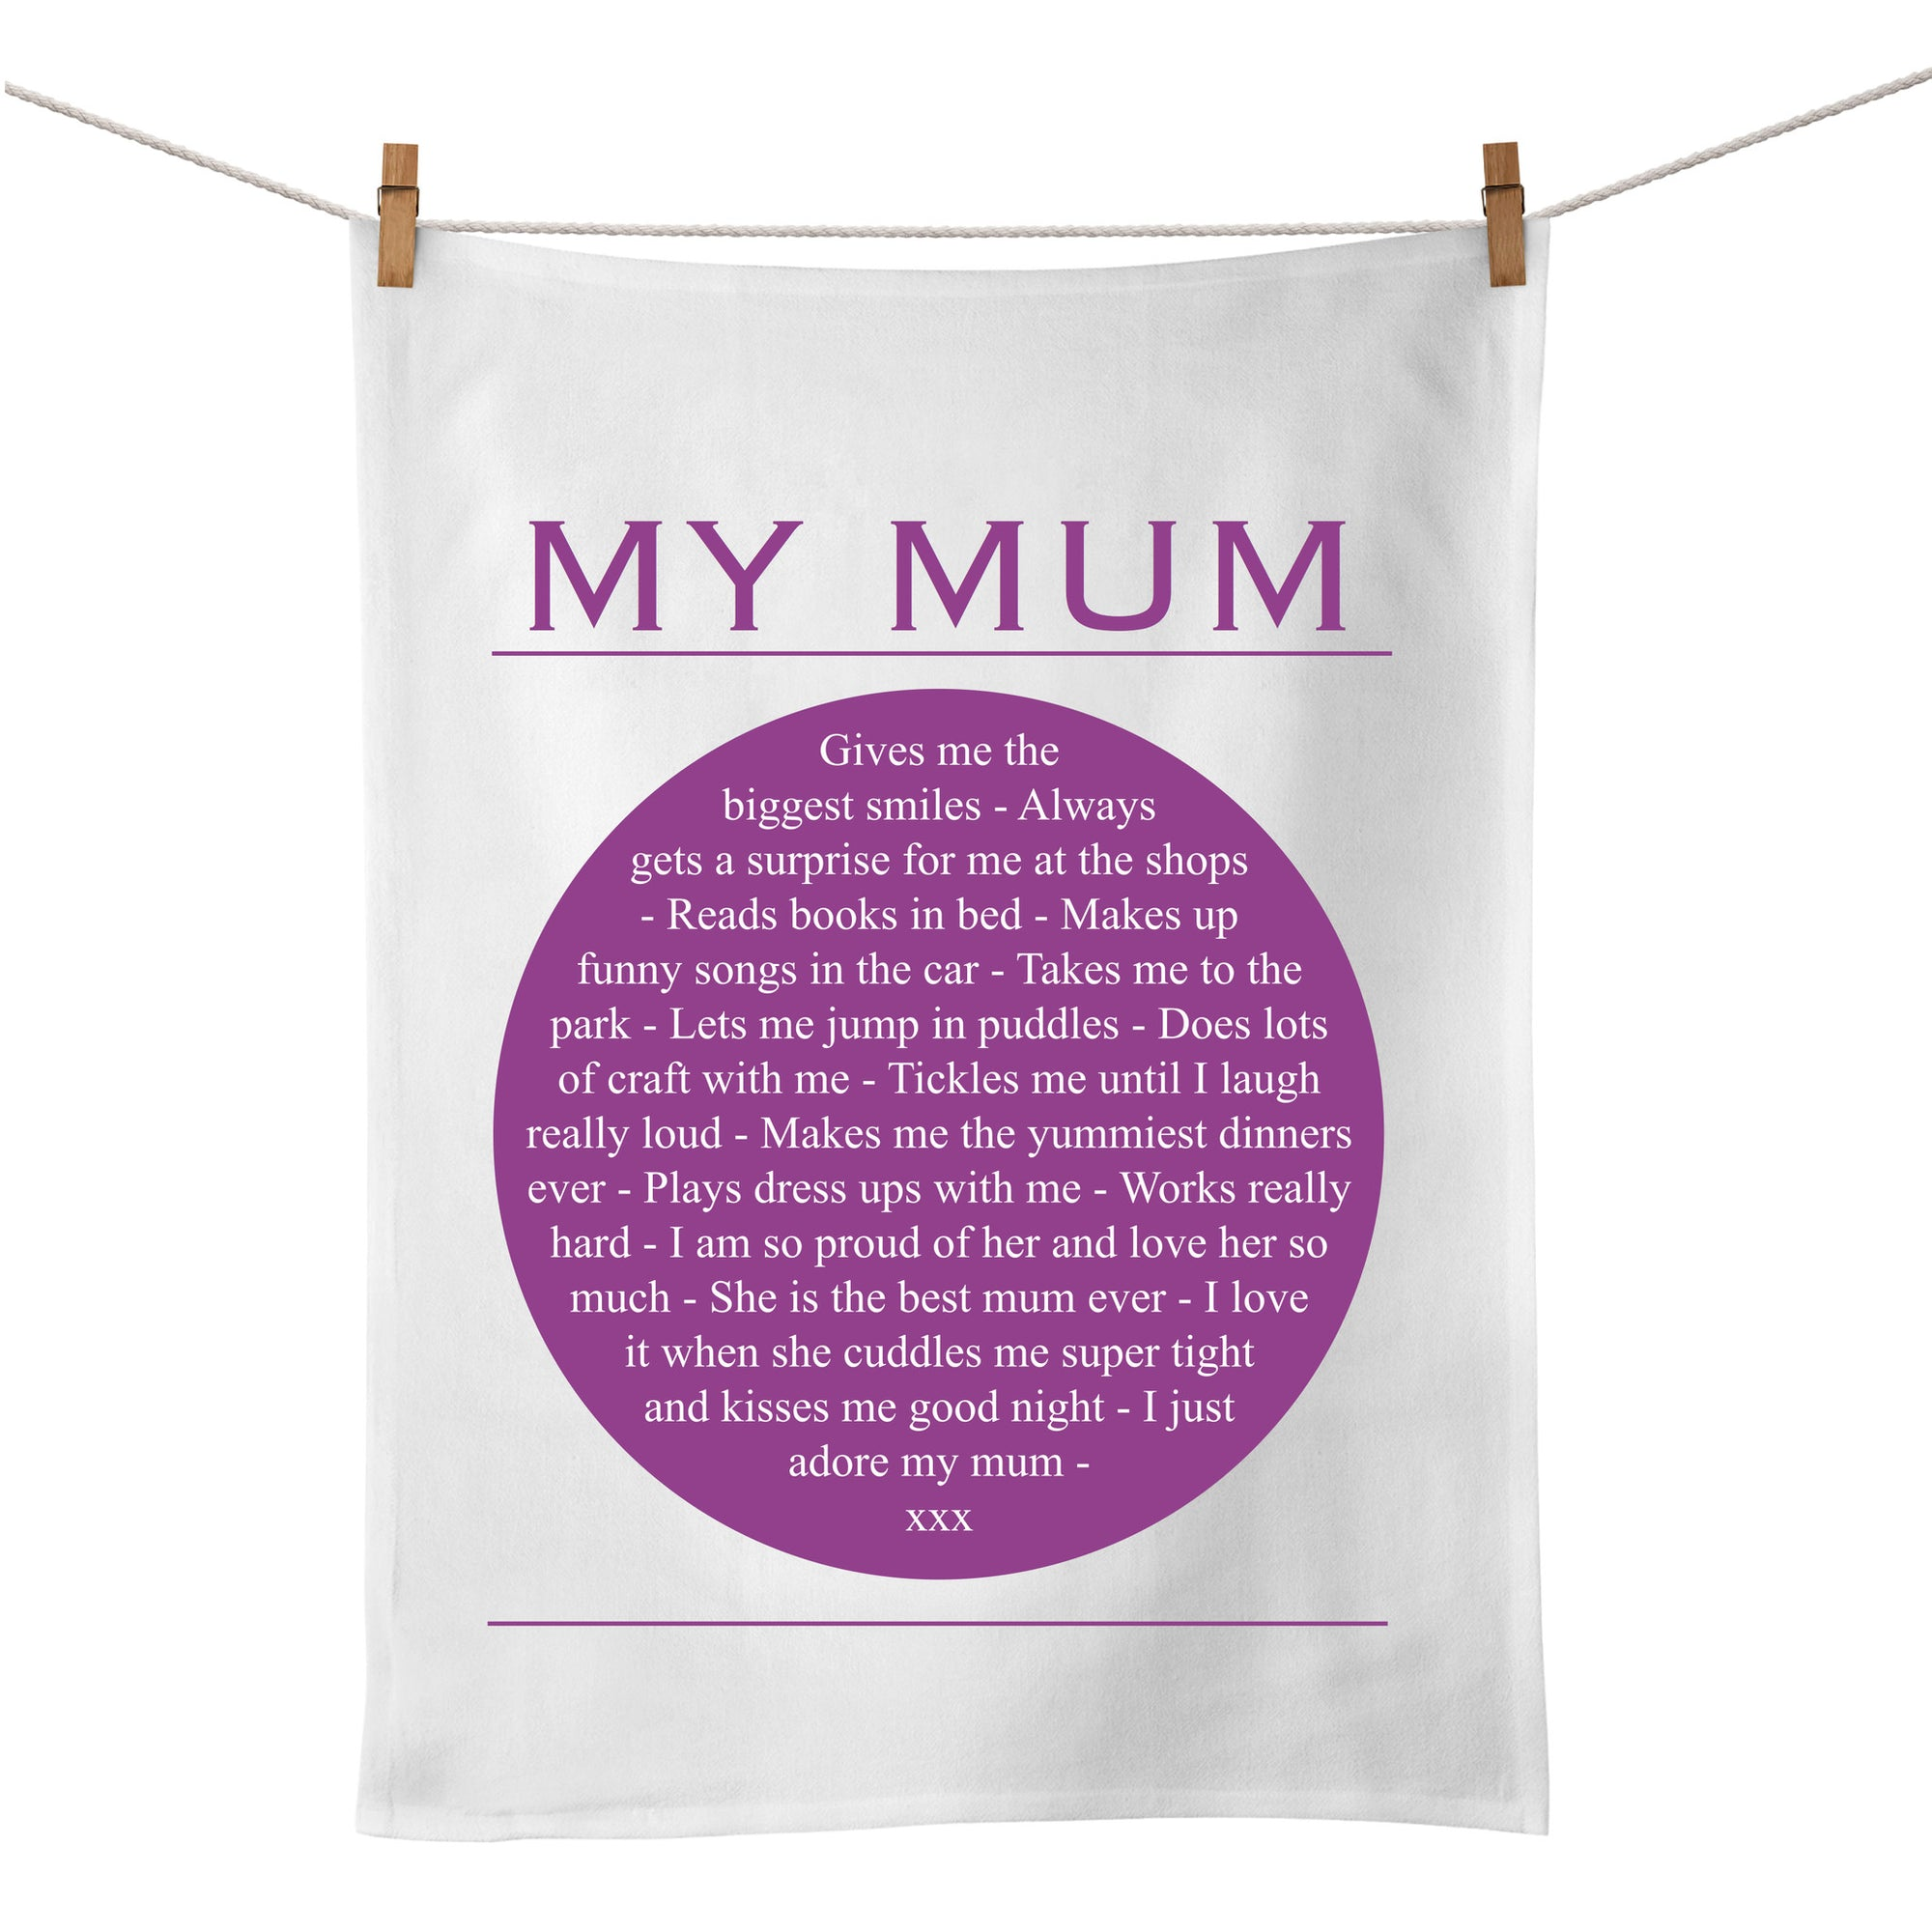 My Mum Tea Towel